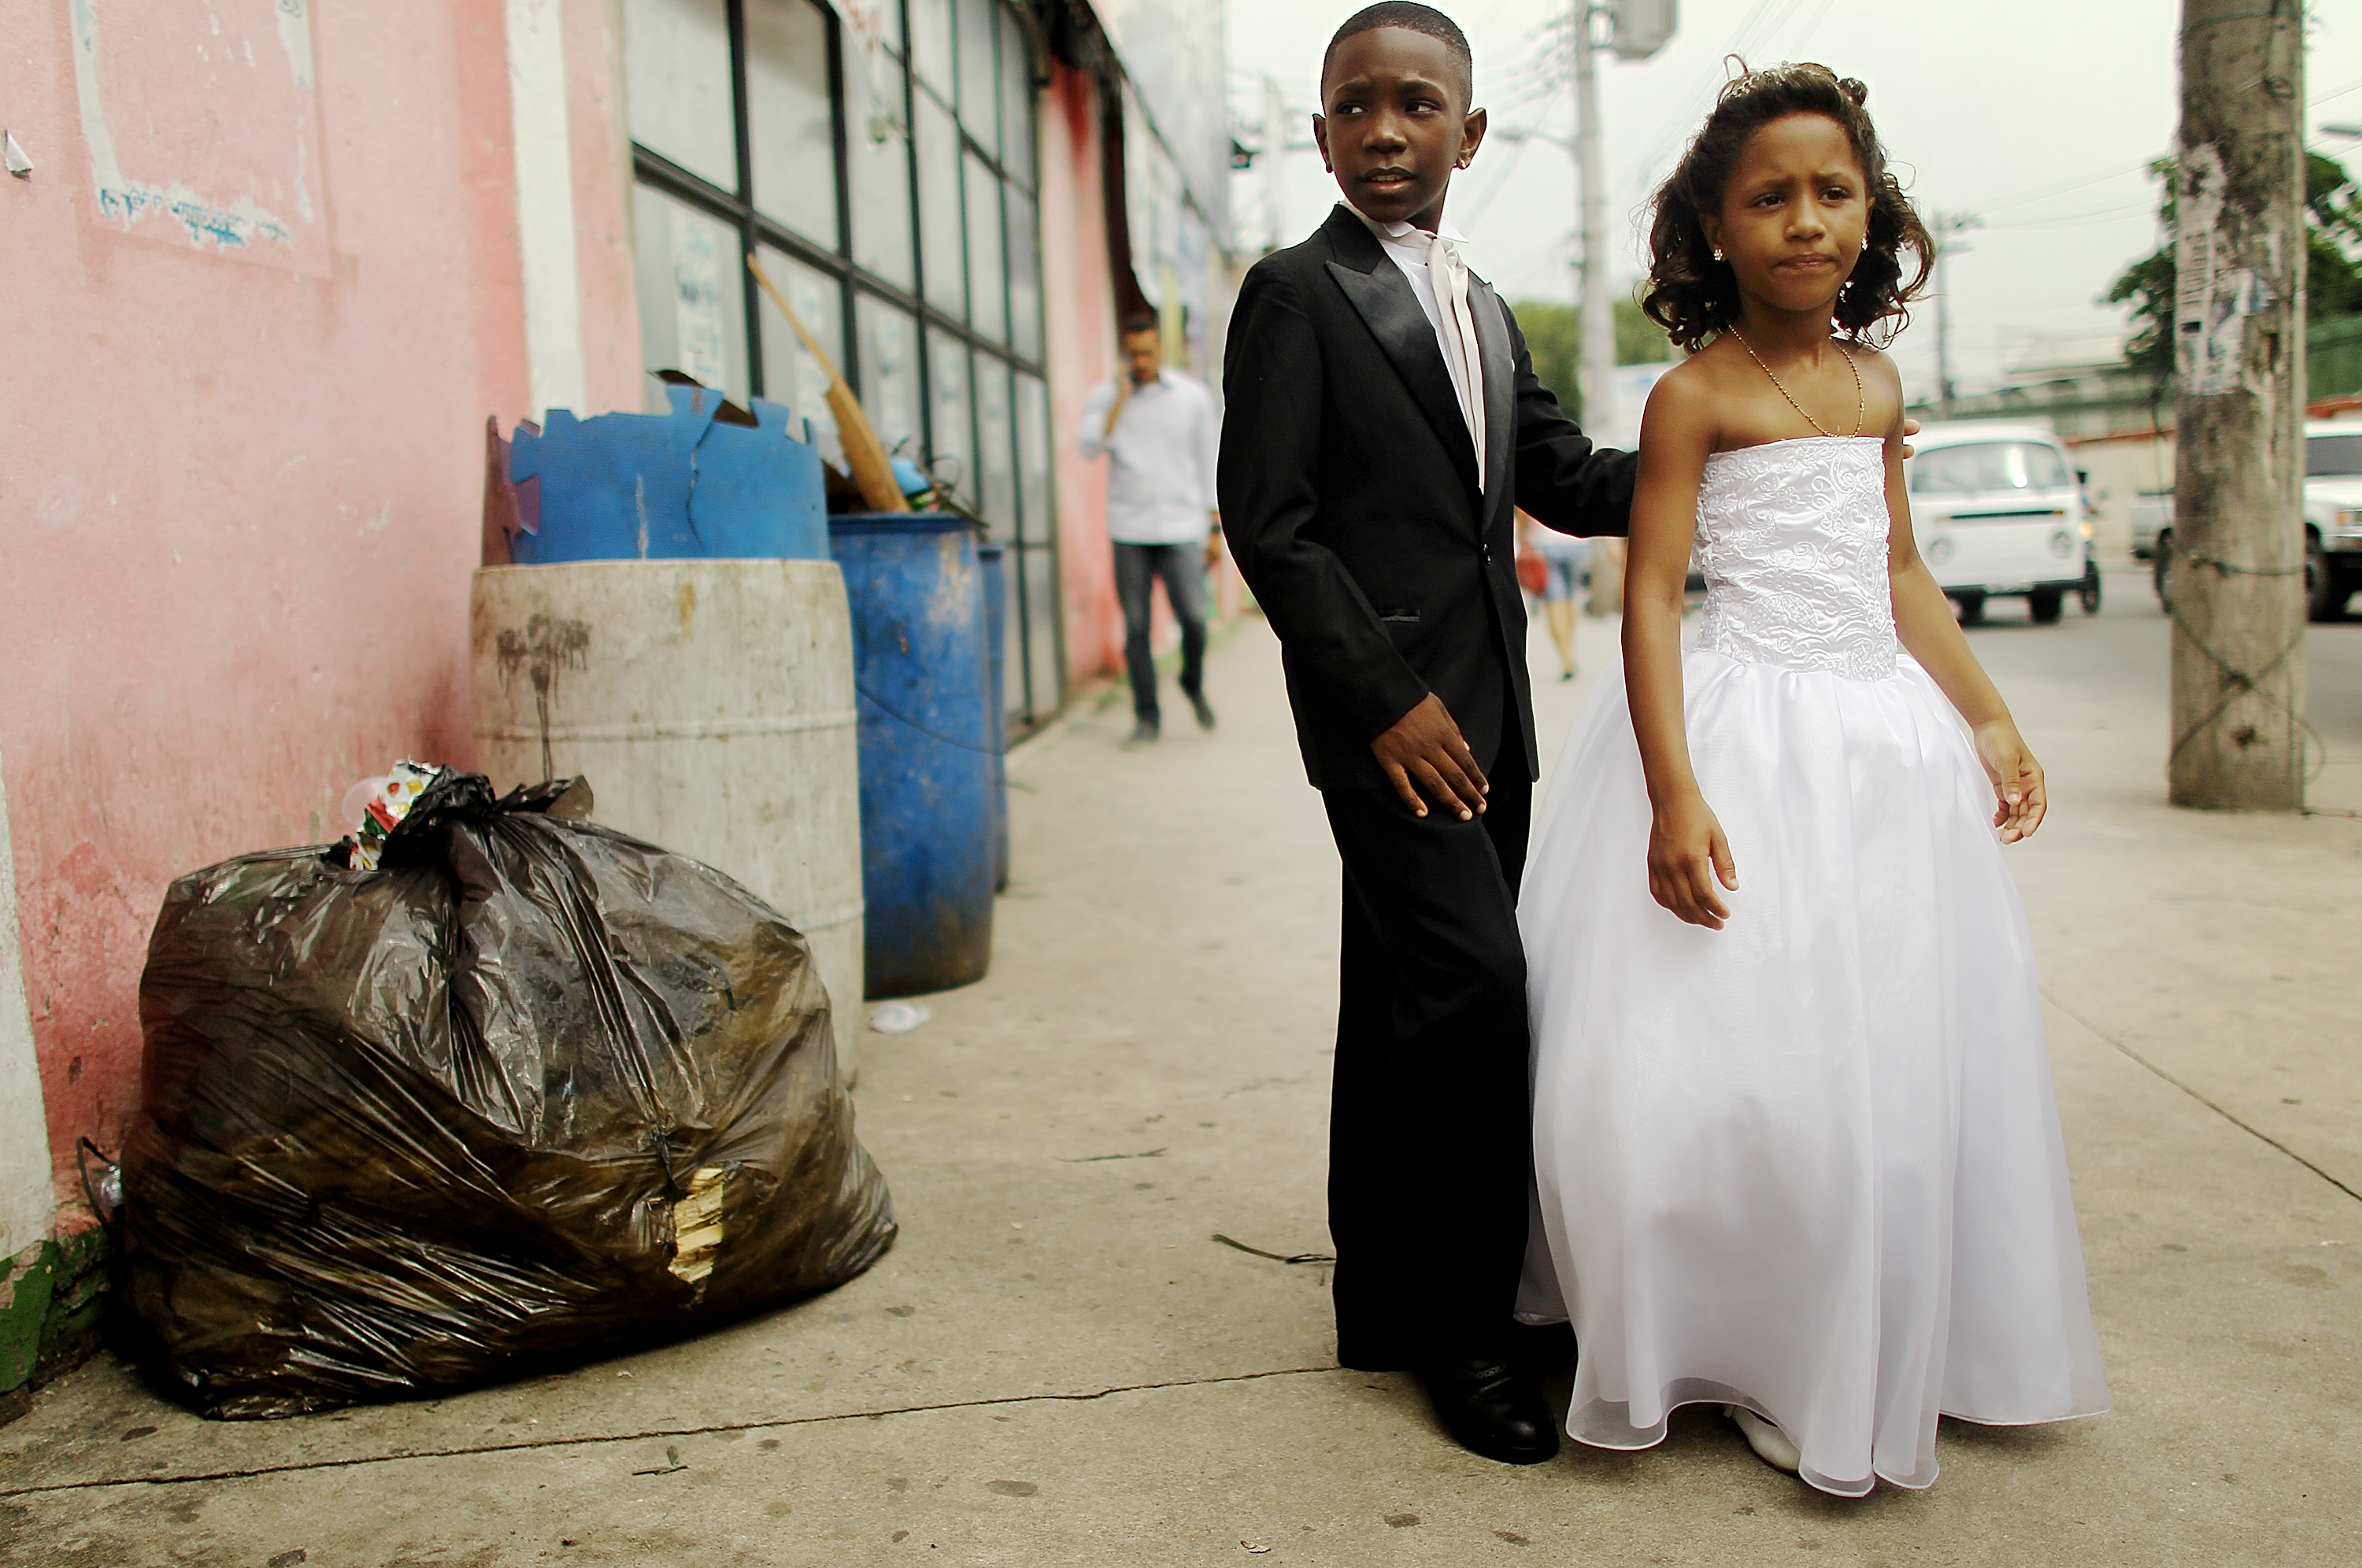 Young family members wait to enter a communal marriage ceremony in the Jacarezinho pacified favela, on January 17, 2014 in Rio de Janeiro.